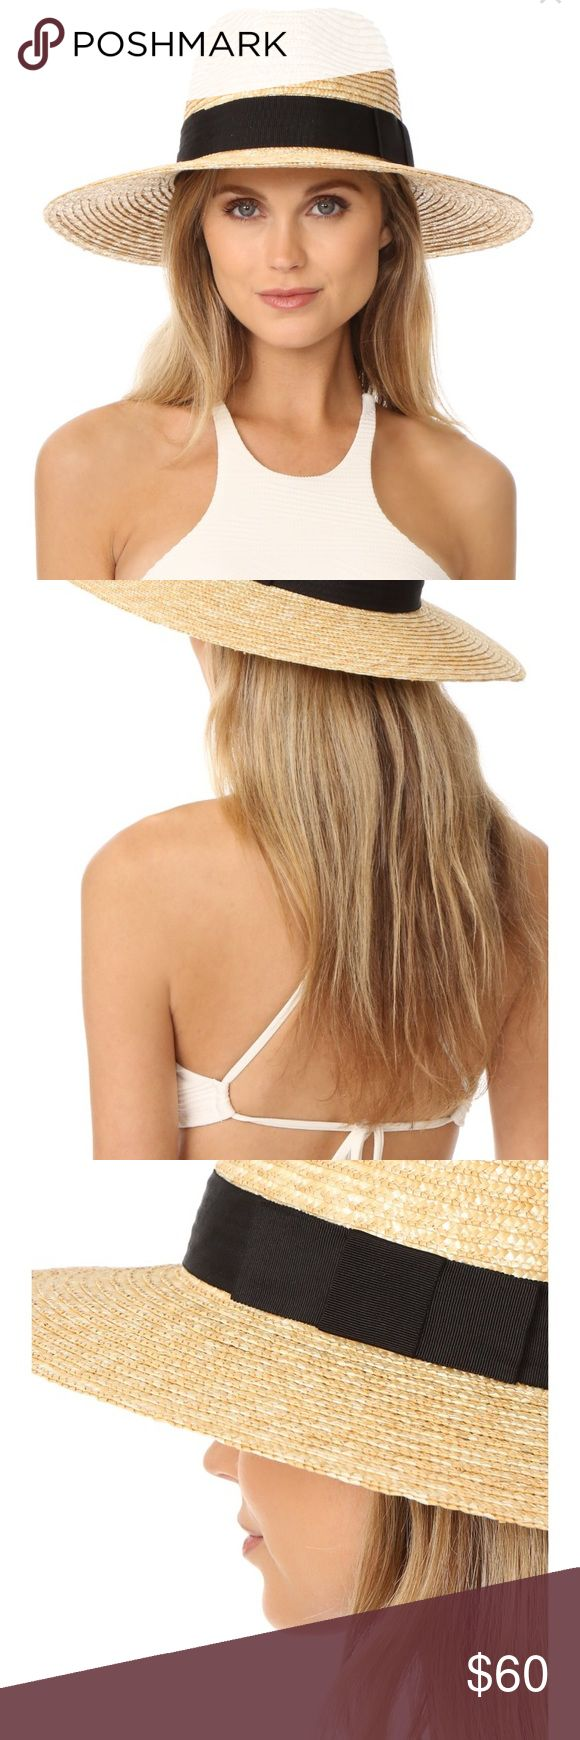 """Brixton Joanna Straw Wide Brim Hat Brand new straw hat from Brixton. Size medium measures 7.25"""", Honey in color.  Has a grosgrain band in black. Brixton style 00249-0454 Brixton Accessories Hats"""